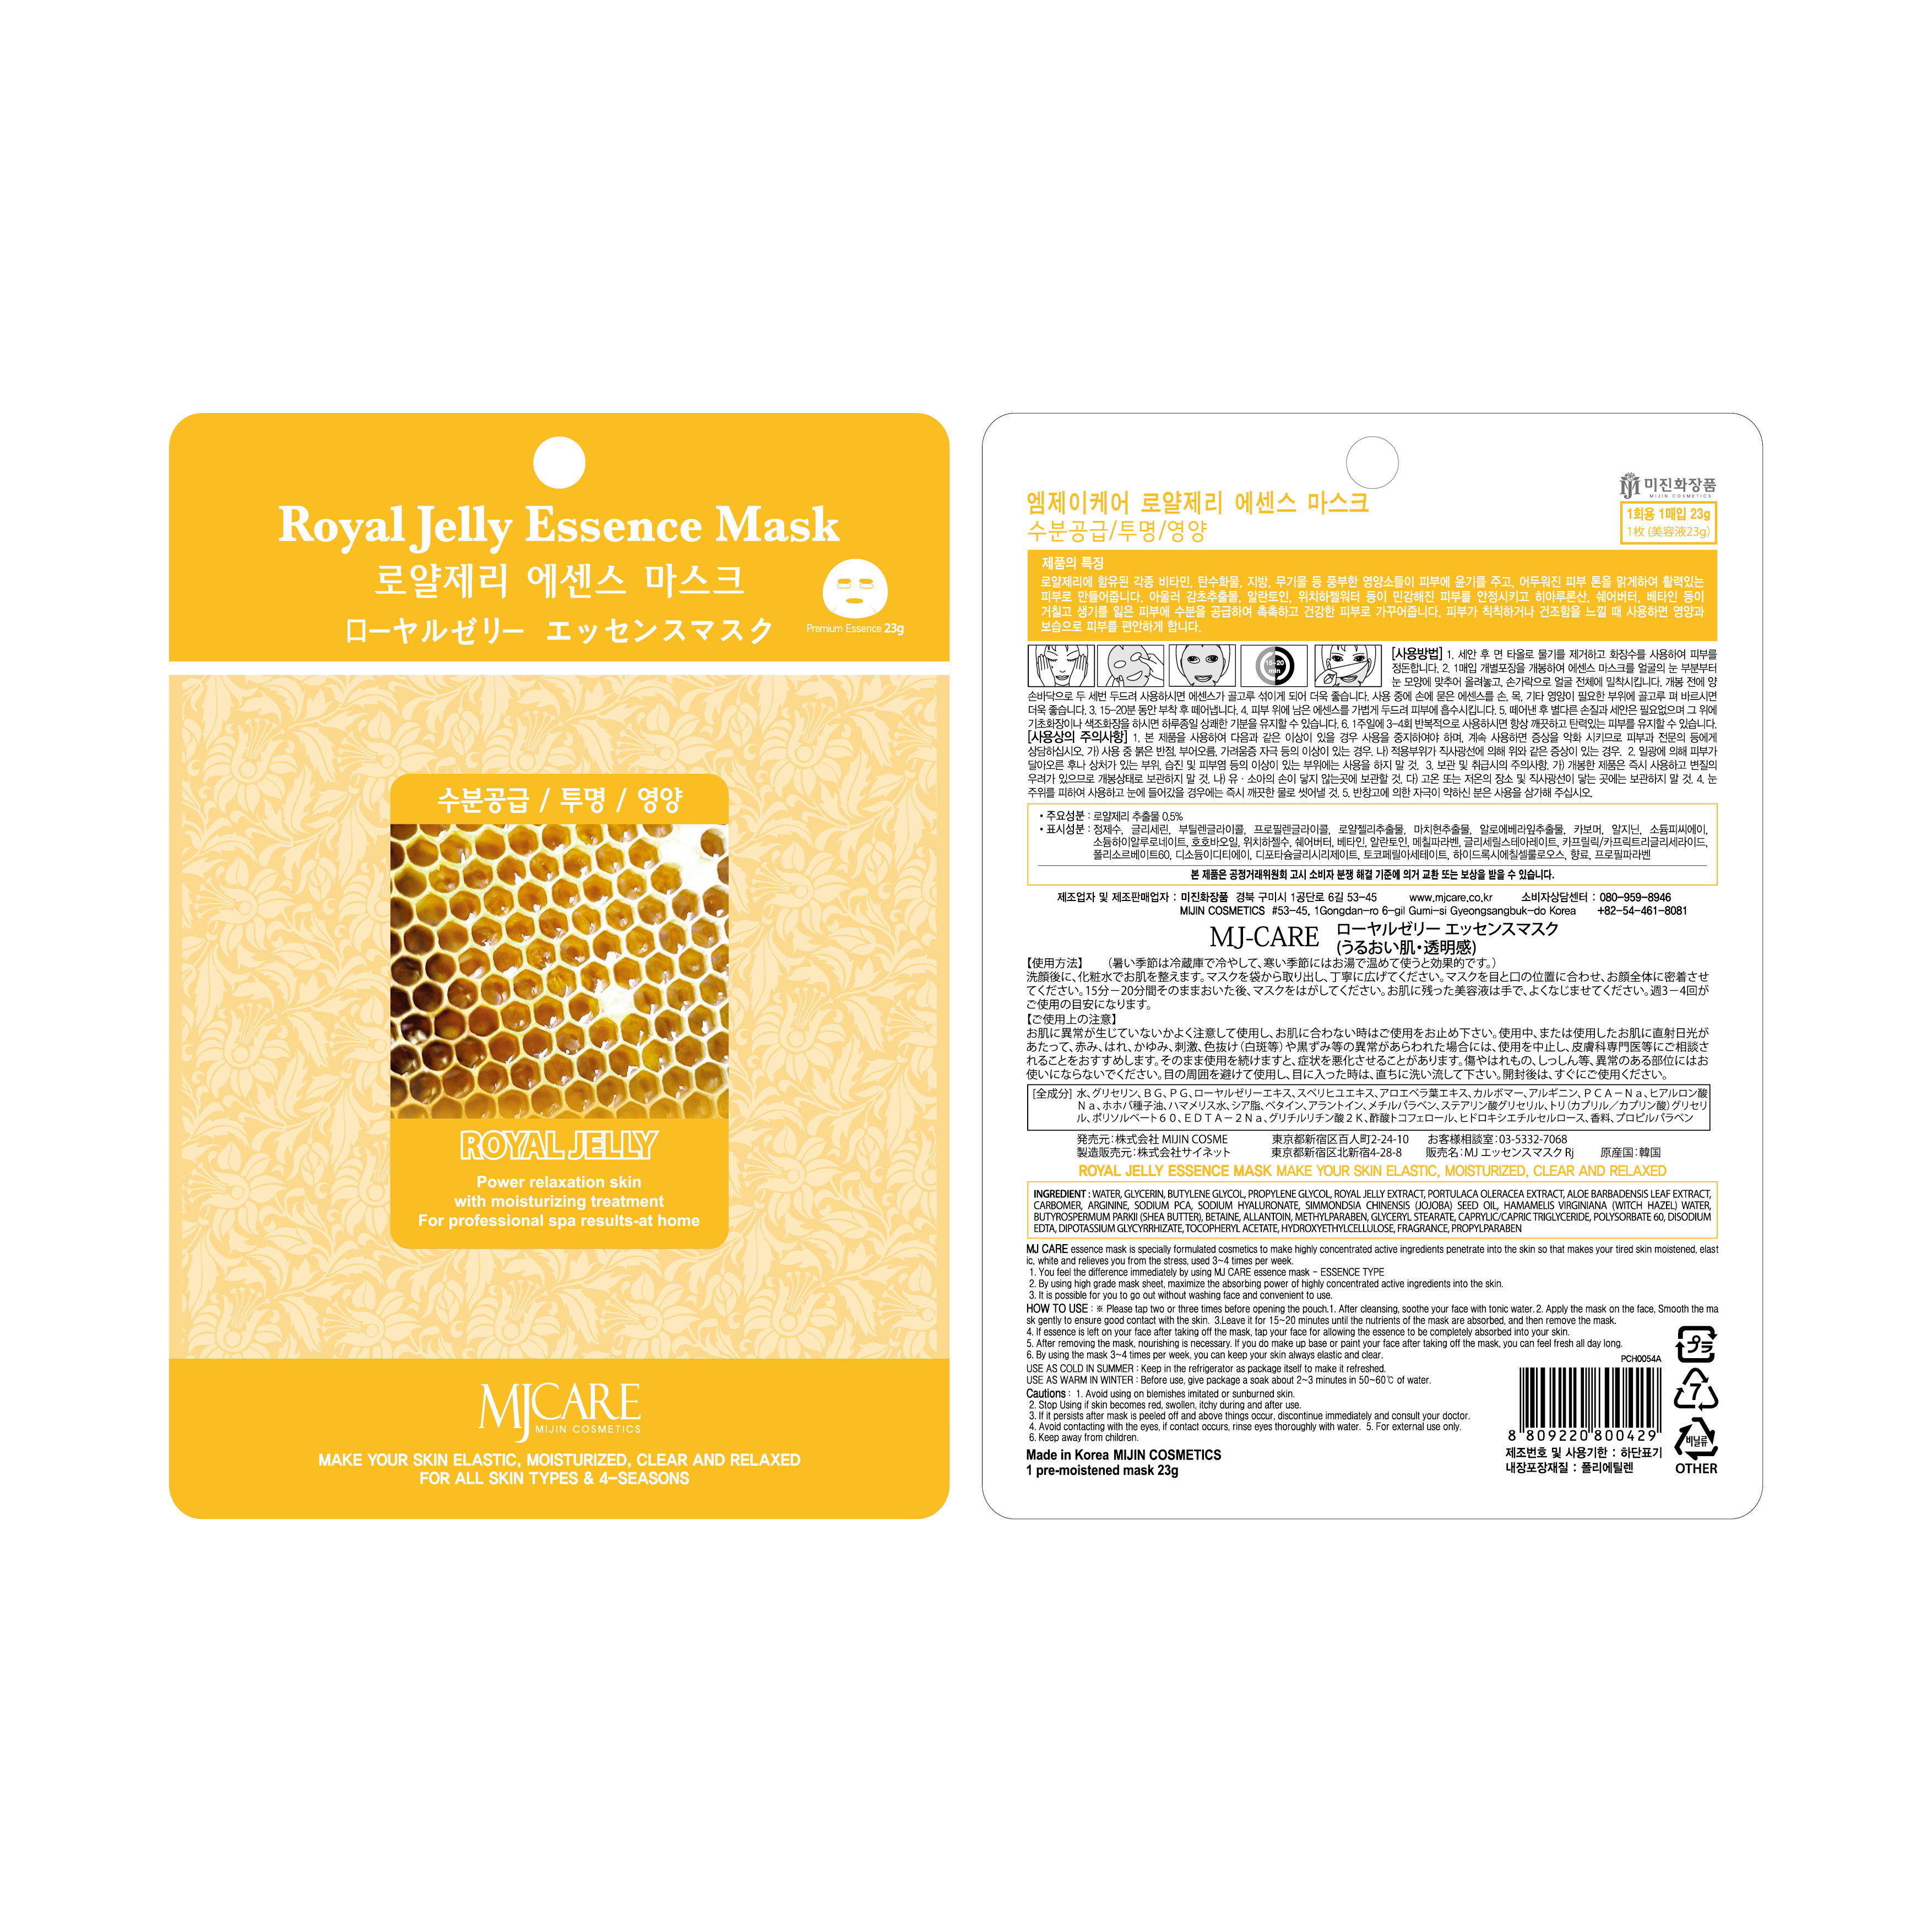 Combo 10 miếng Mặt nạ Sữa ong chúa MJCare Royal Jelly Essence